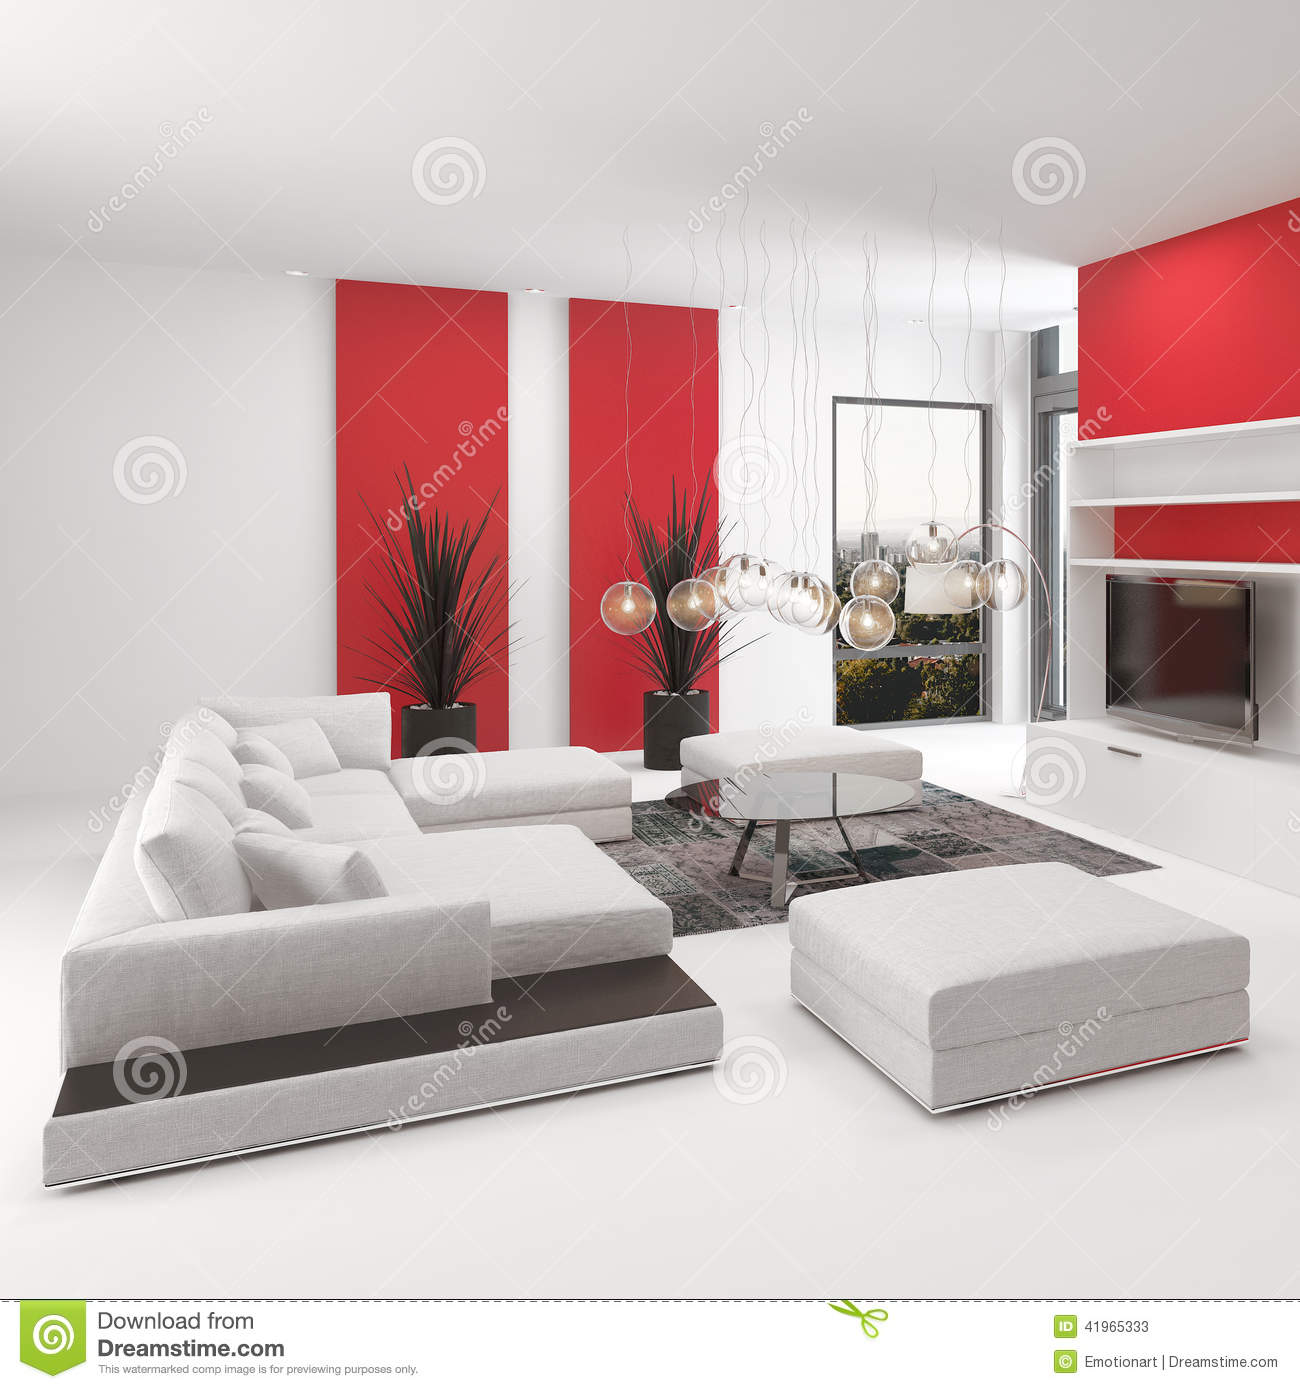 modern living room interior with vivid red accents stock  - accents cabinets decor interior living lounge modern